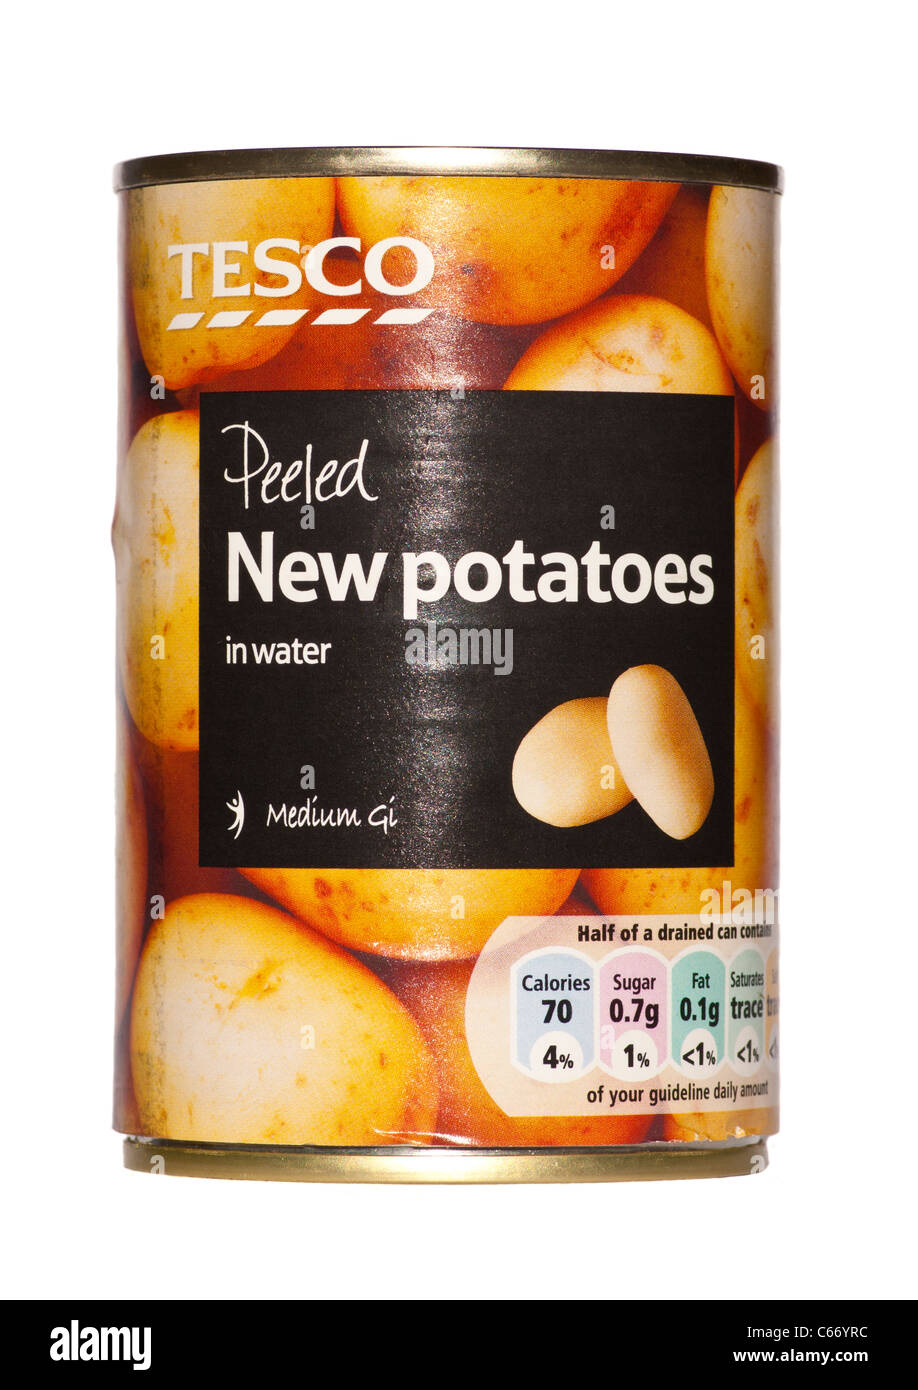 Tesco Own Brand Products Stock Photos Tesco Own Brand Products